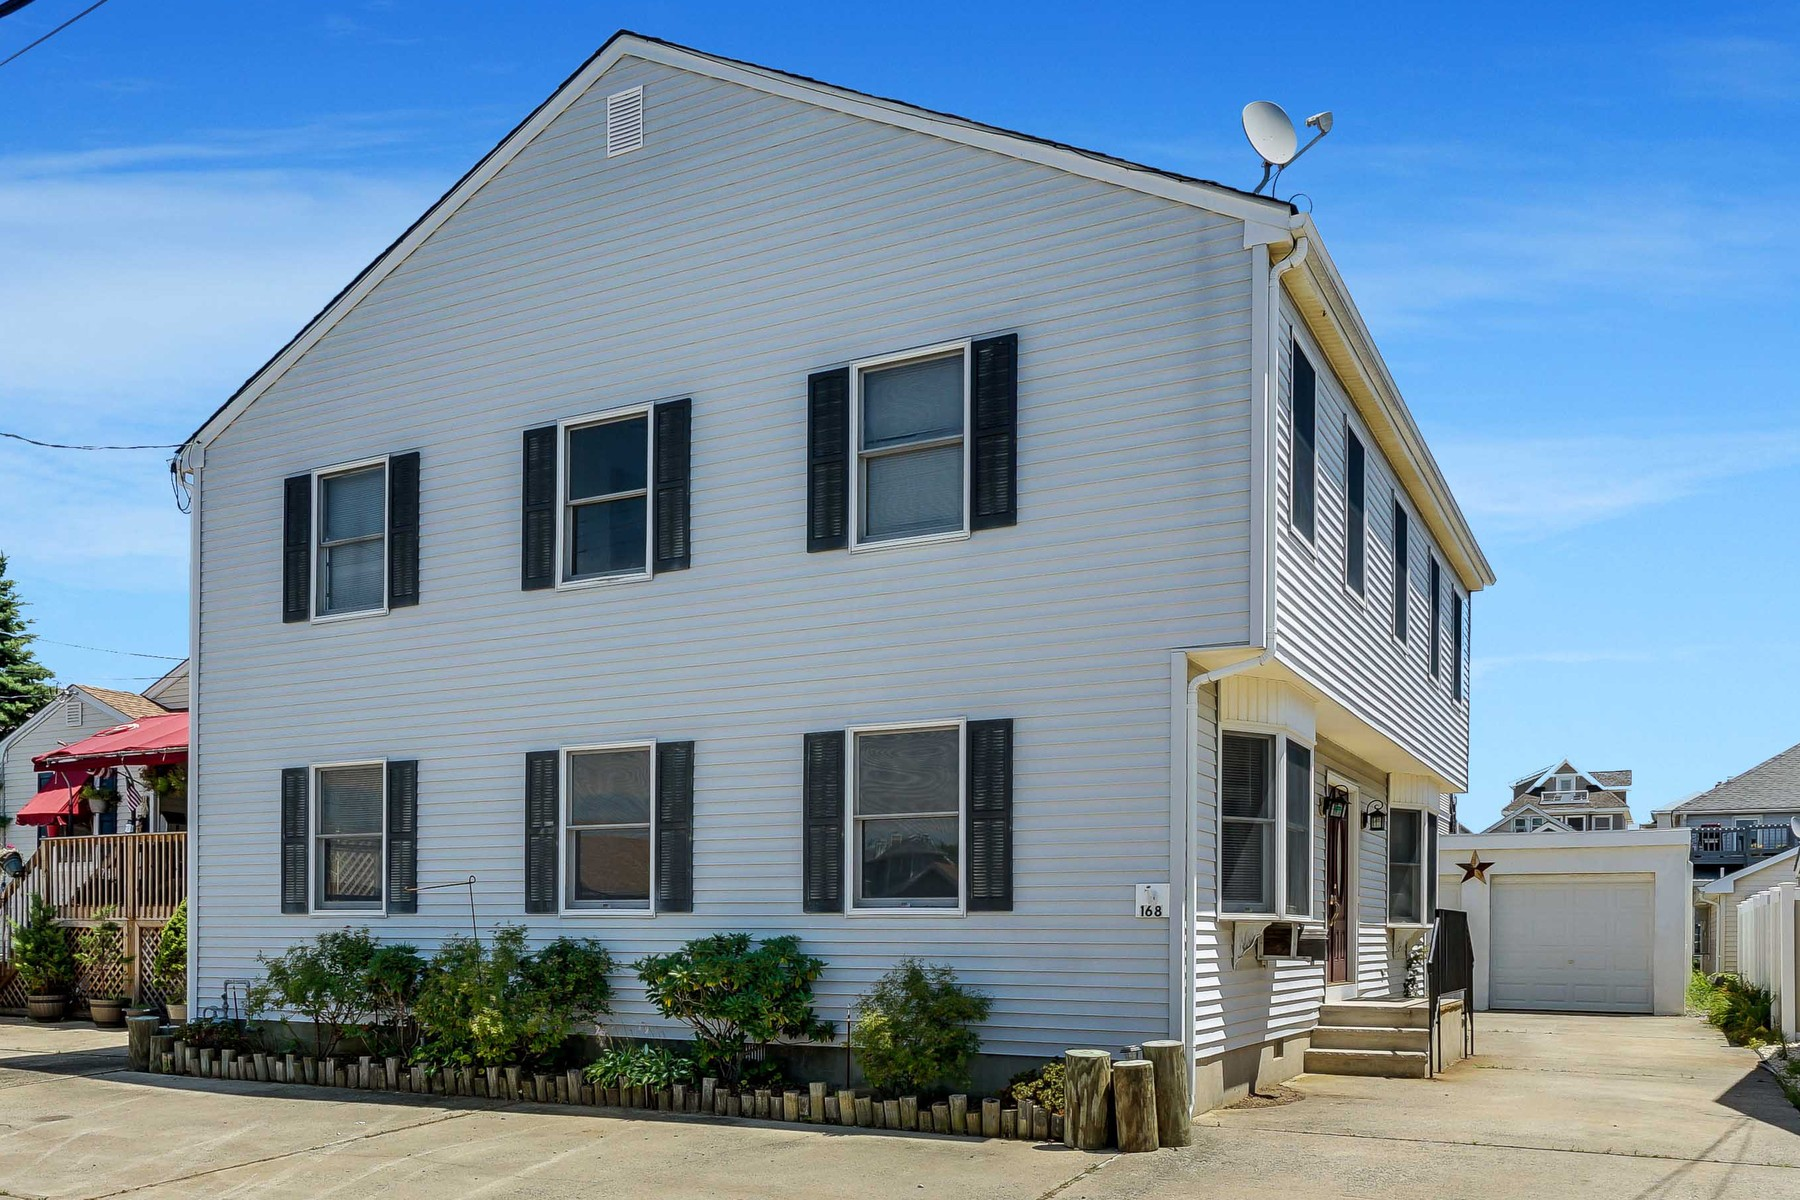 Single Family Home for Sale at Fantastic Beach Get Away 168 2nd Avenue Manasquan, New Jersey, 08736 United States